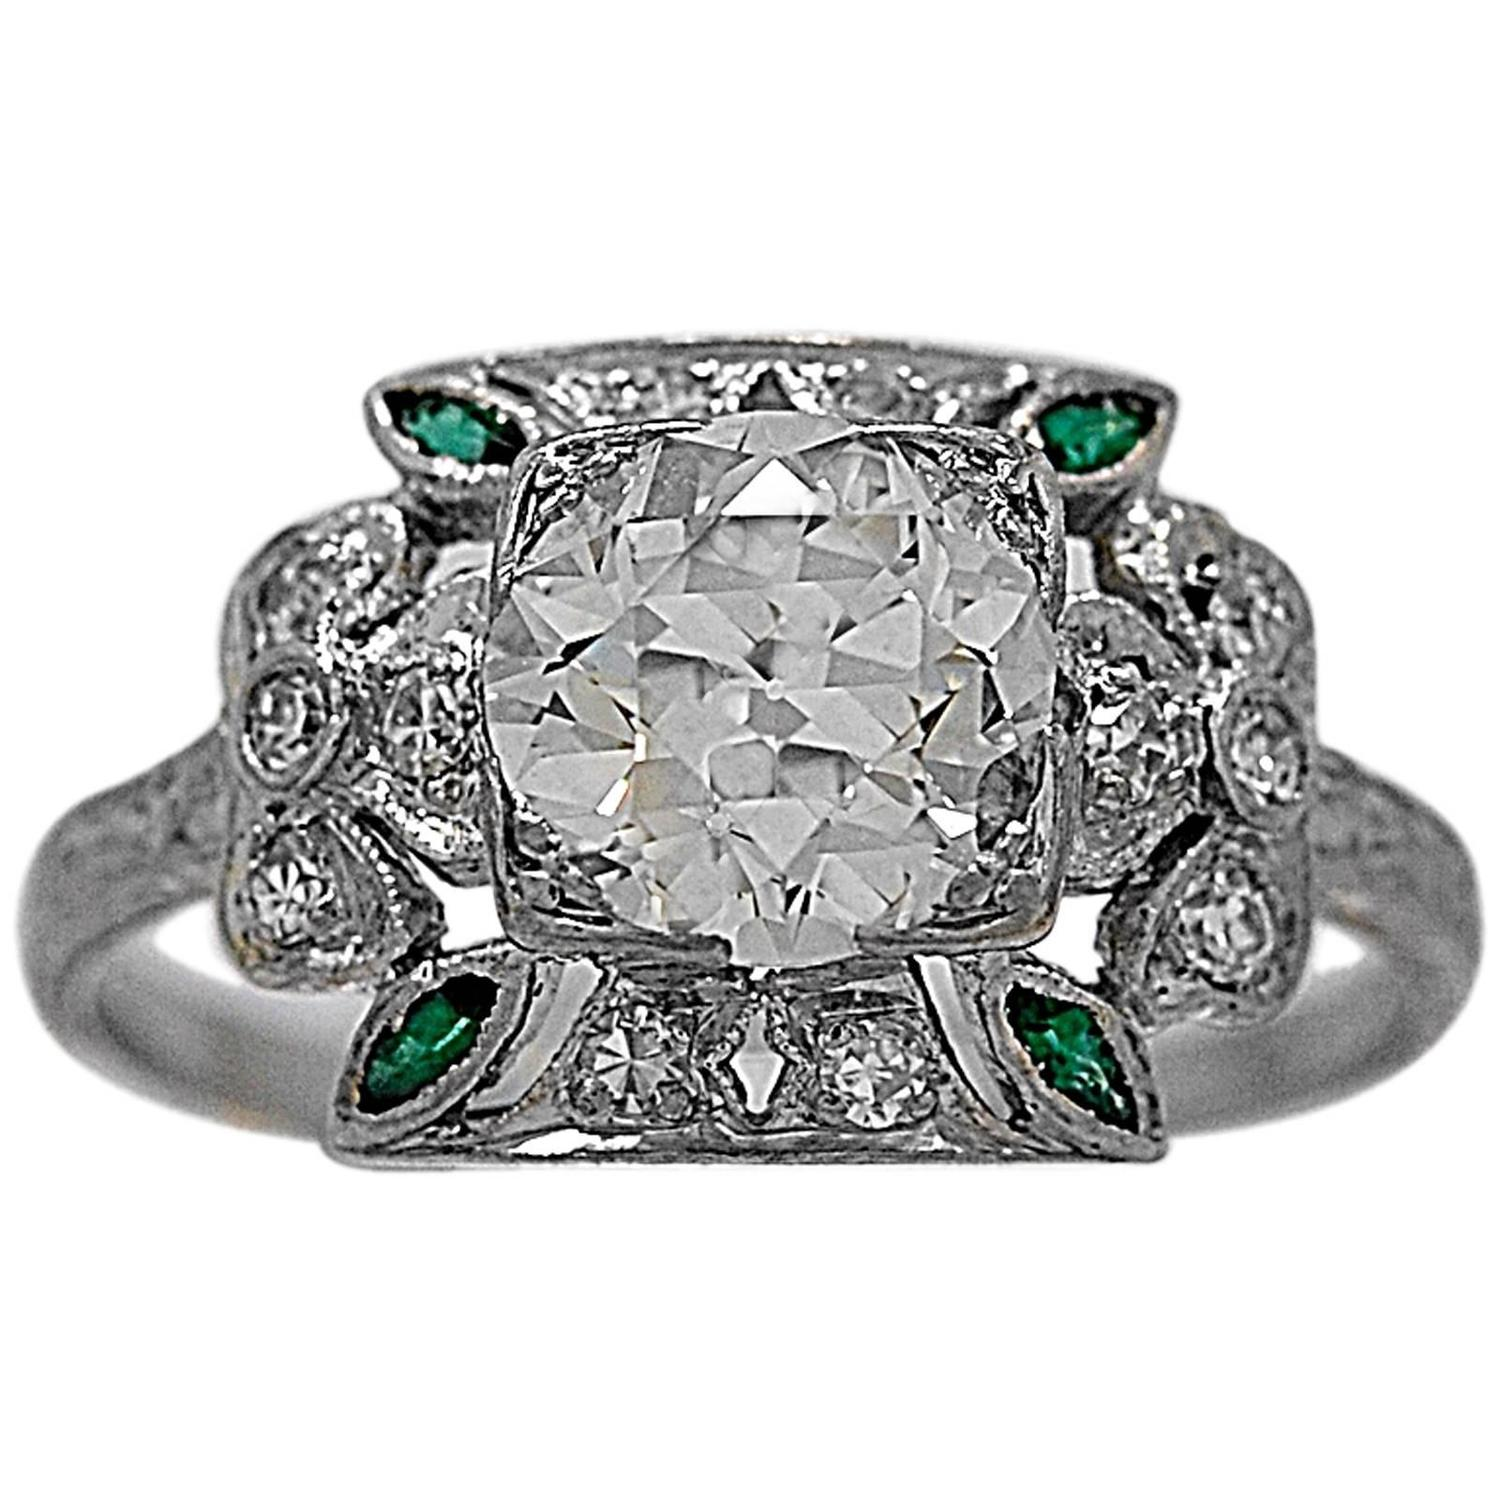 antique emerald 1 45 carat platinum engagement